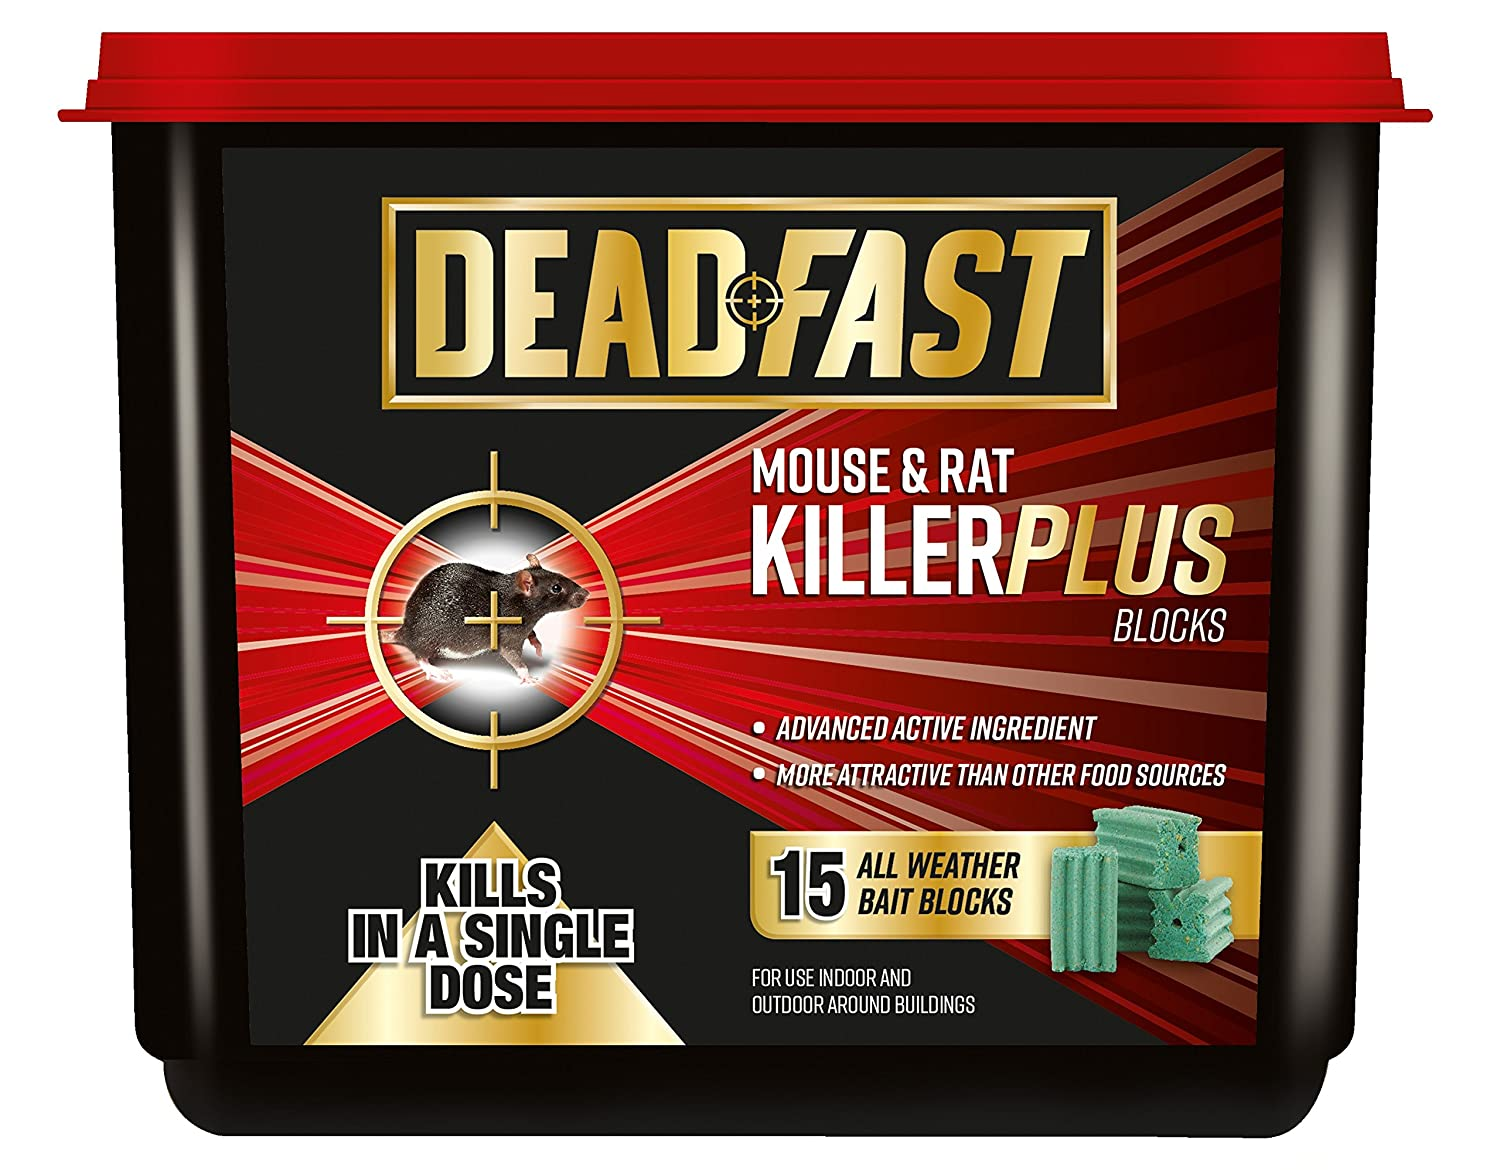 Deadfast Mouse and Rat Killer Plus Poison, 15 Block Westland Horticulture 20300394